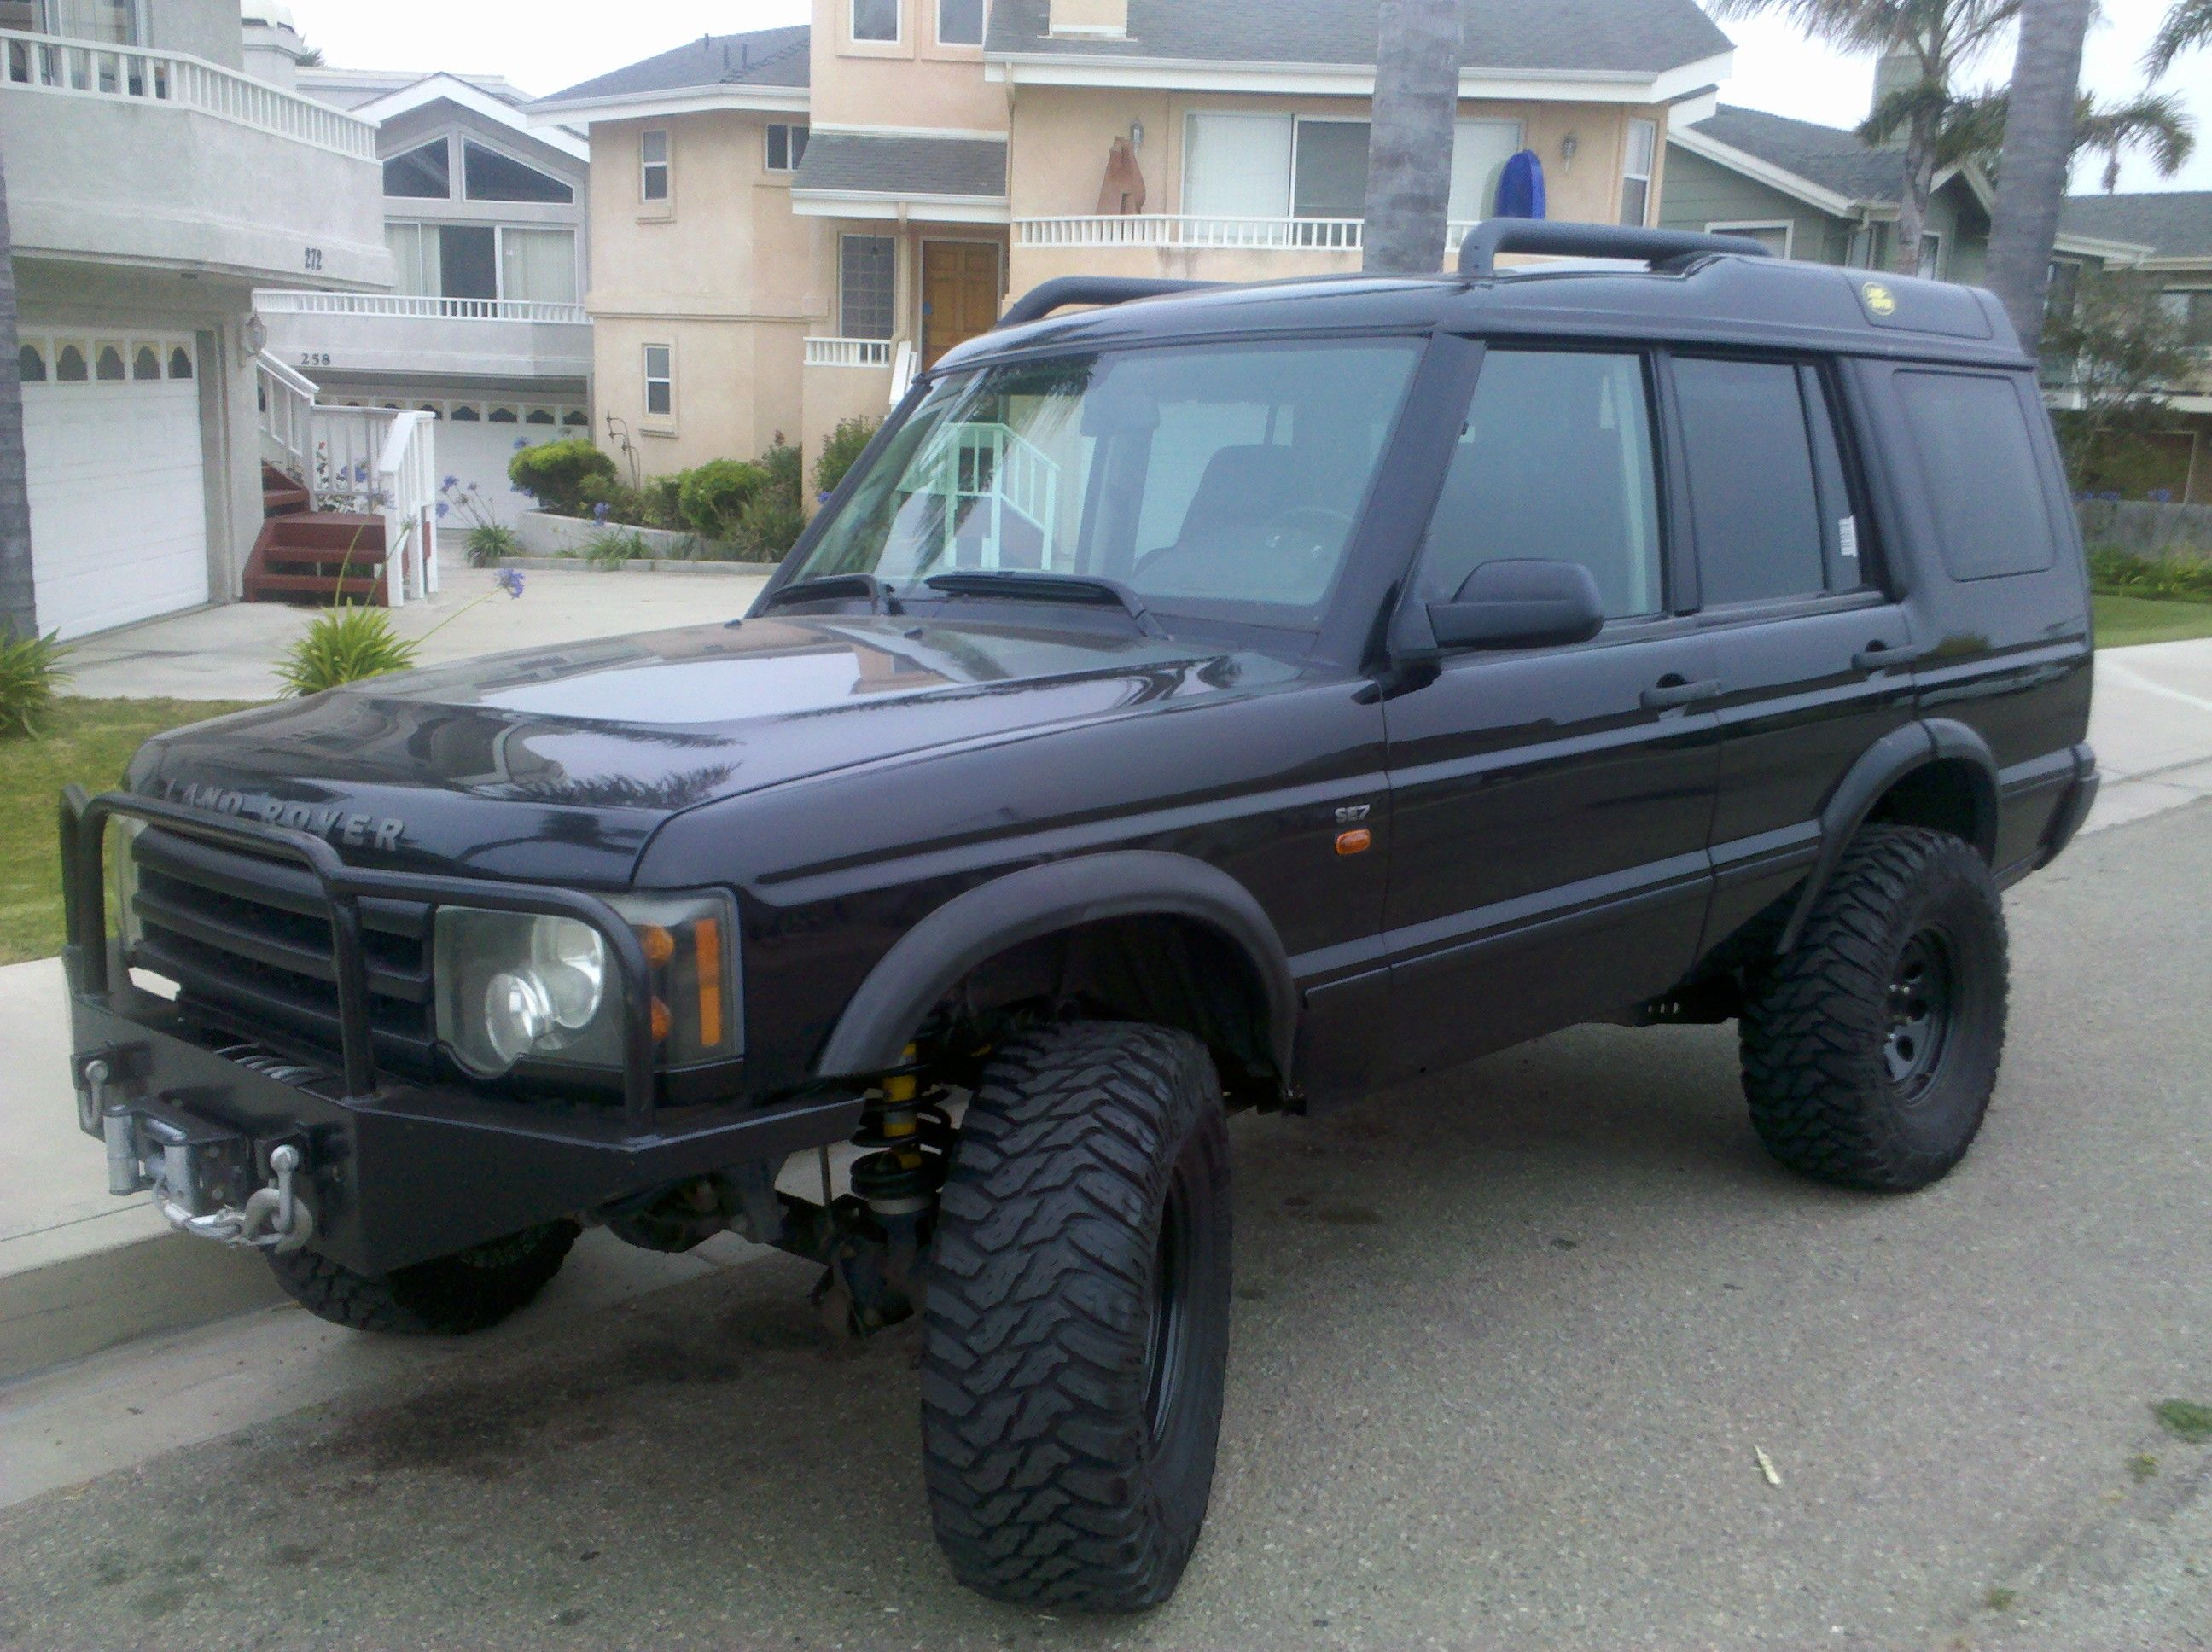 2004 Land Rover Discovery 2 With 6 Inch Lift Custom Bumpers Rims And All Blacked Out Land Rover Land Rover Discovery 2 Land Rover Discovery